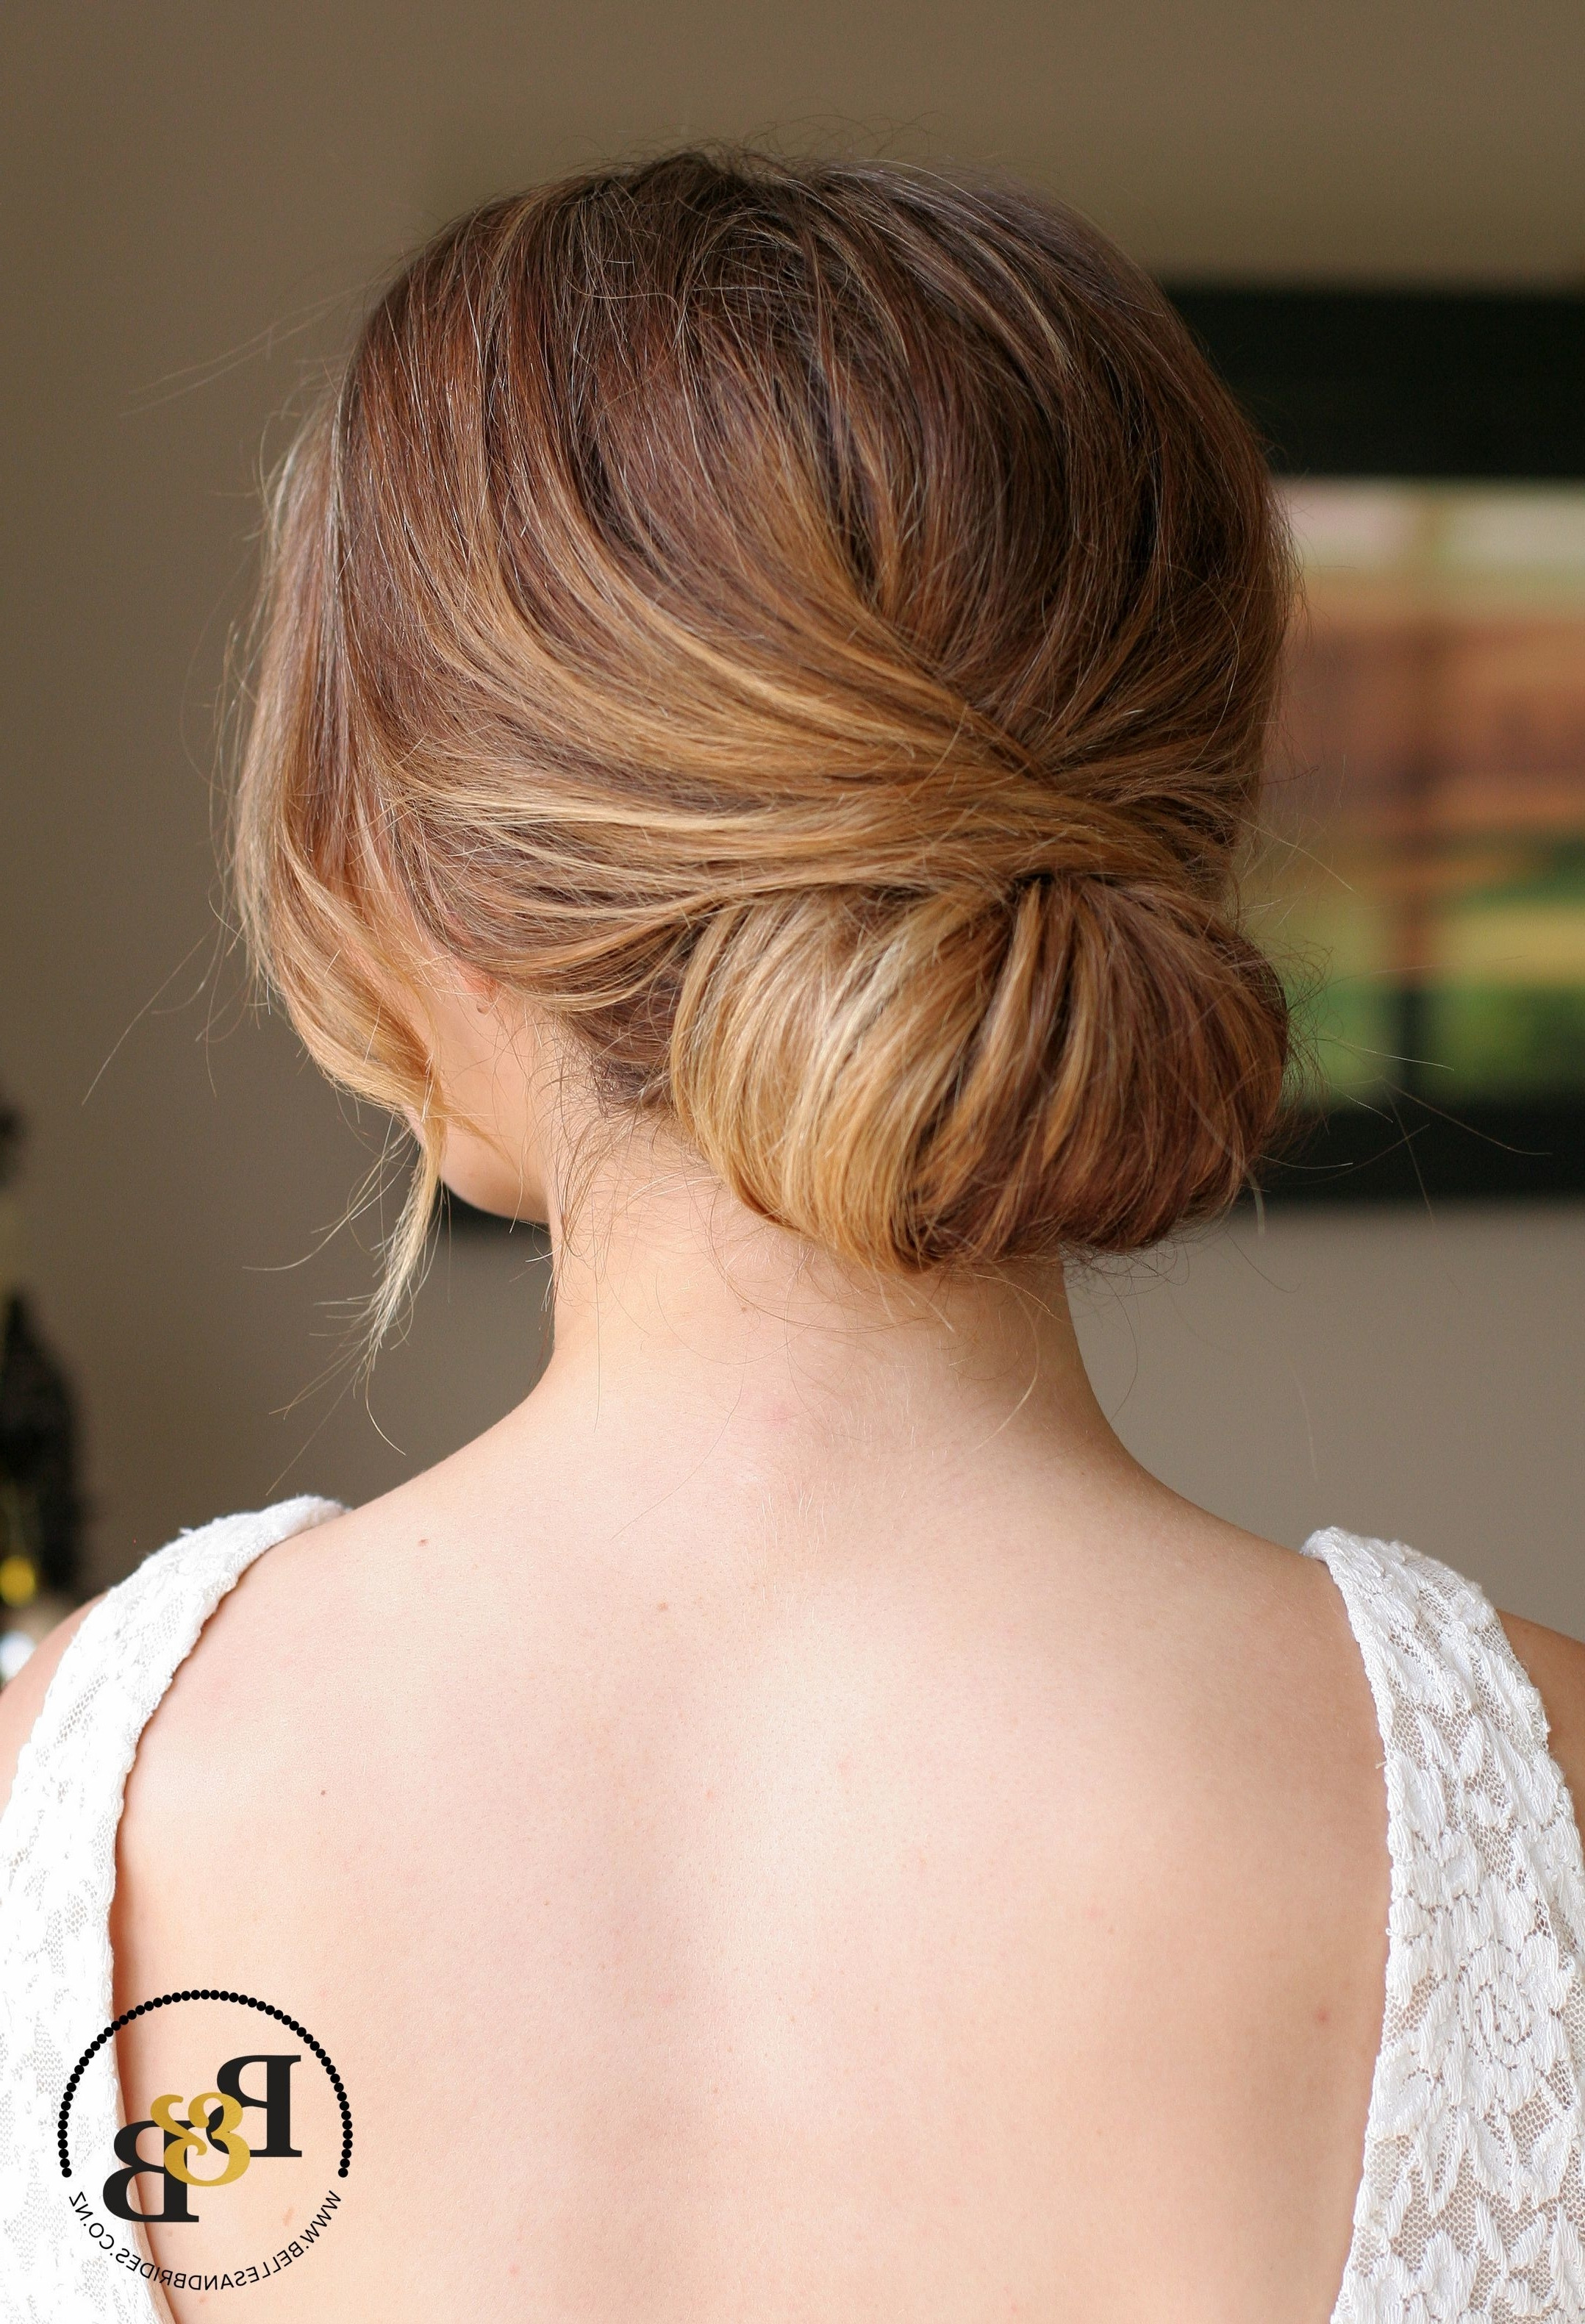 Wedding Hair Low Chignon / Casual Bridal Chignon / Soft Romantic Inside Most Up To Date Chignon Wedding Hairstyles (View 15 of 15)